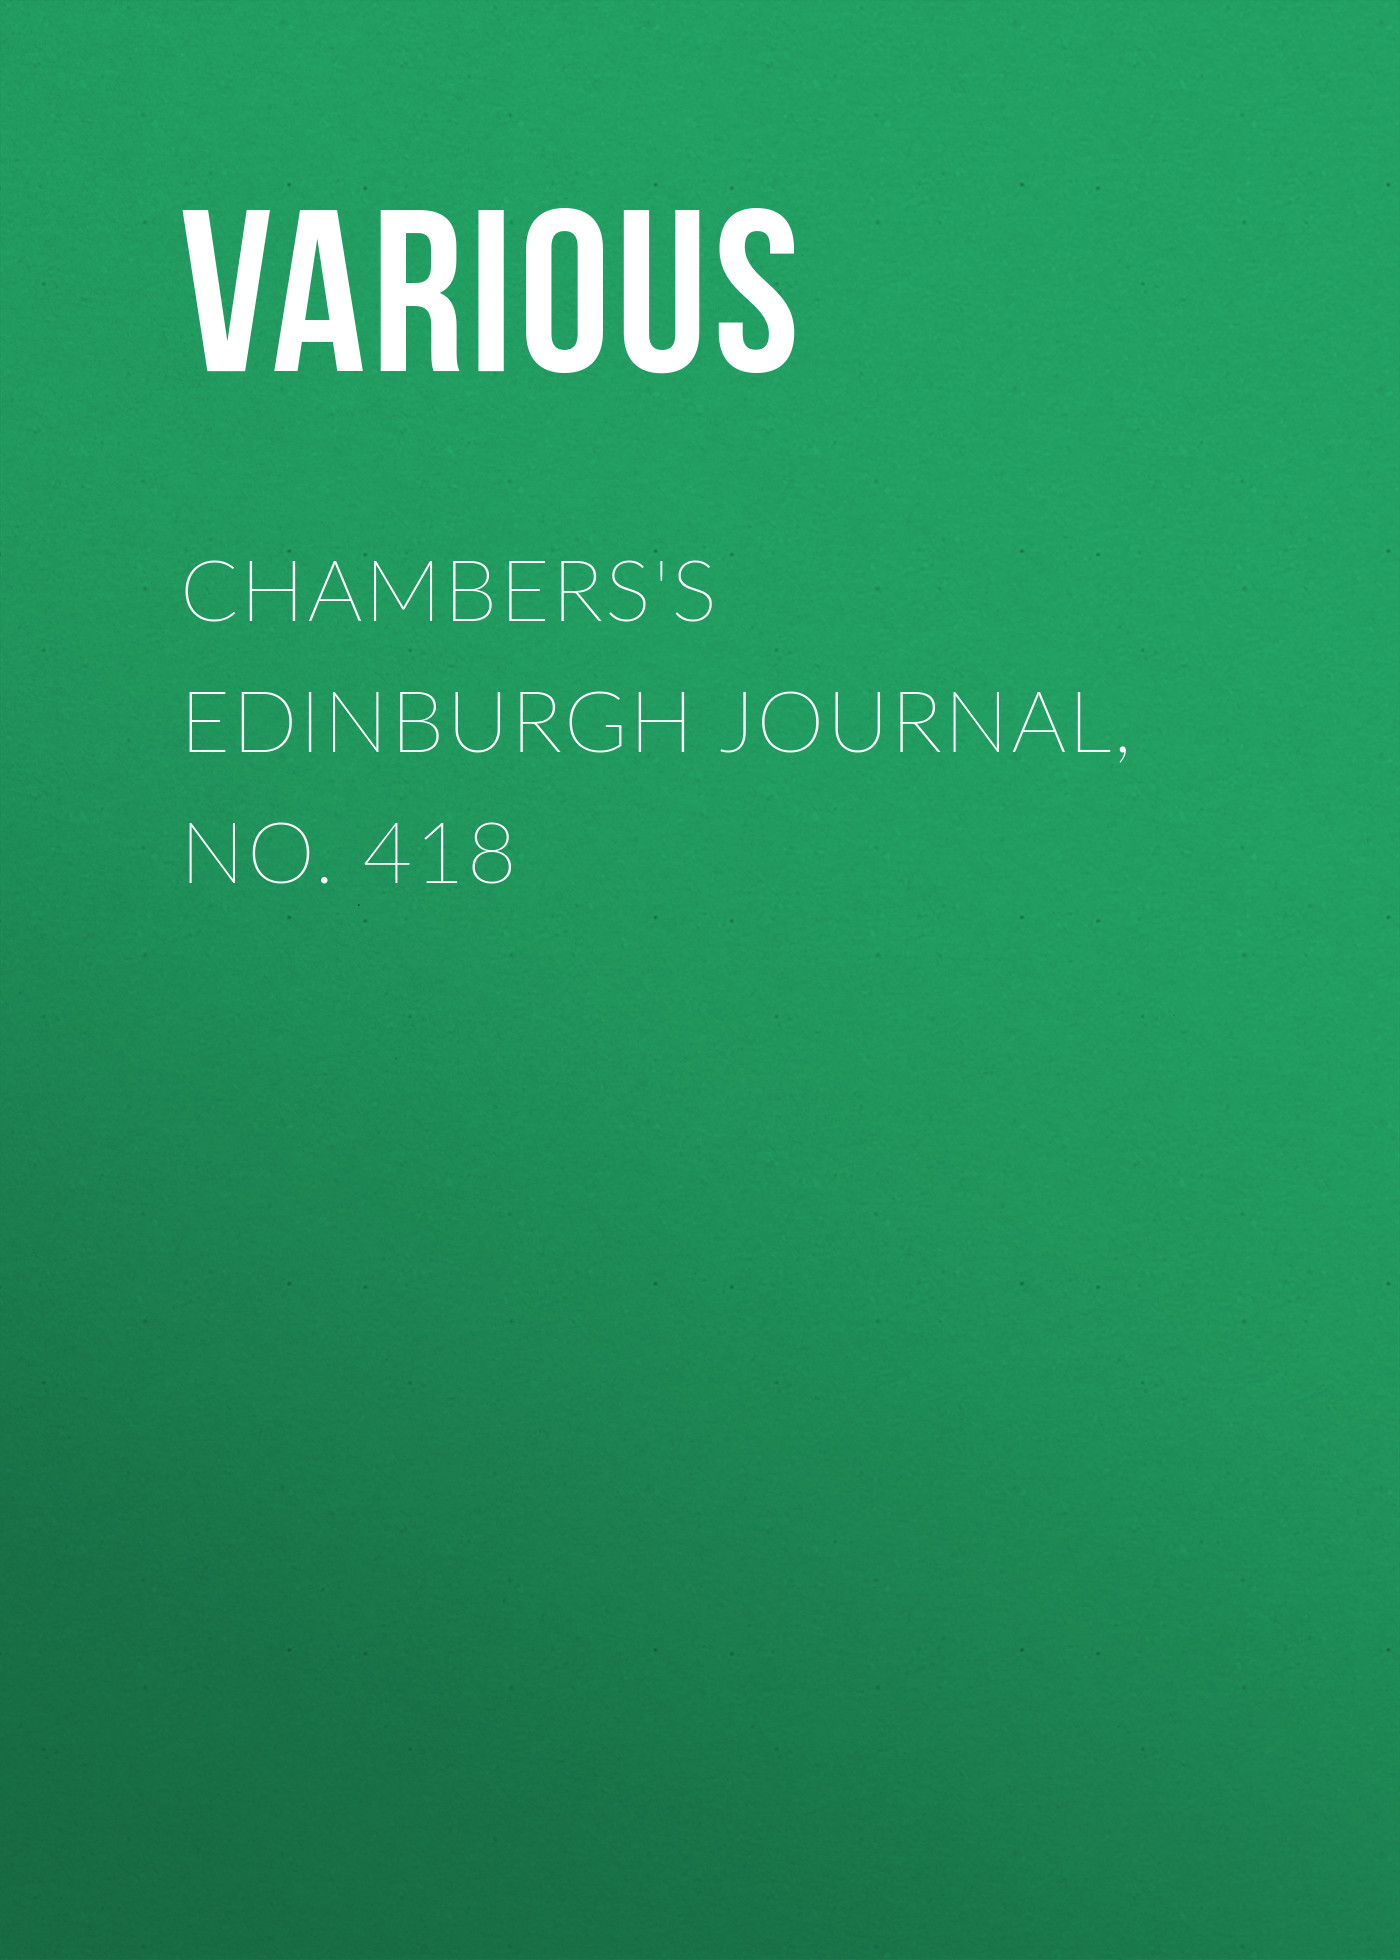 Chambers\'s Edinburgh Journal, No. 418 ( Various  )